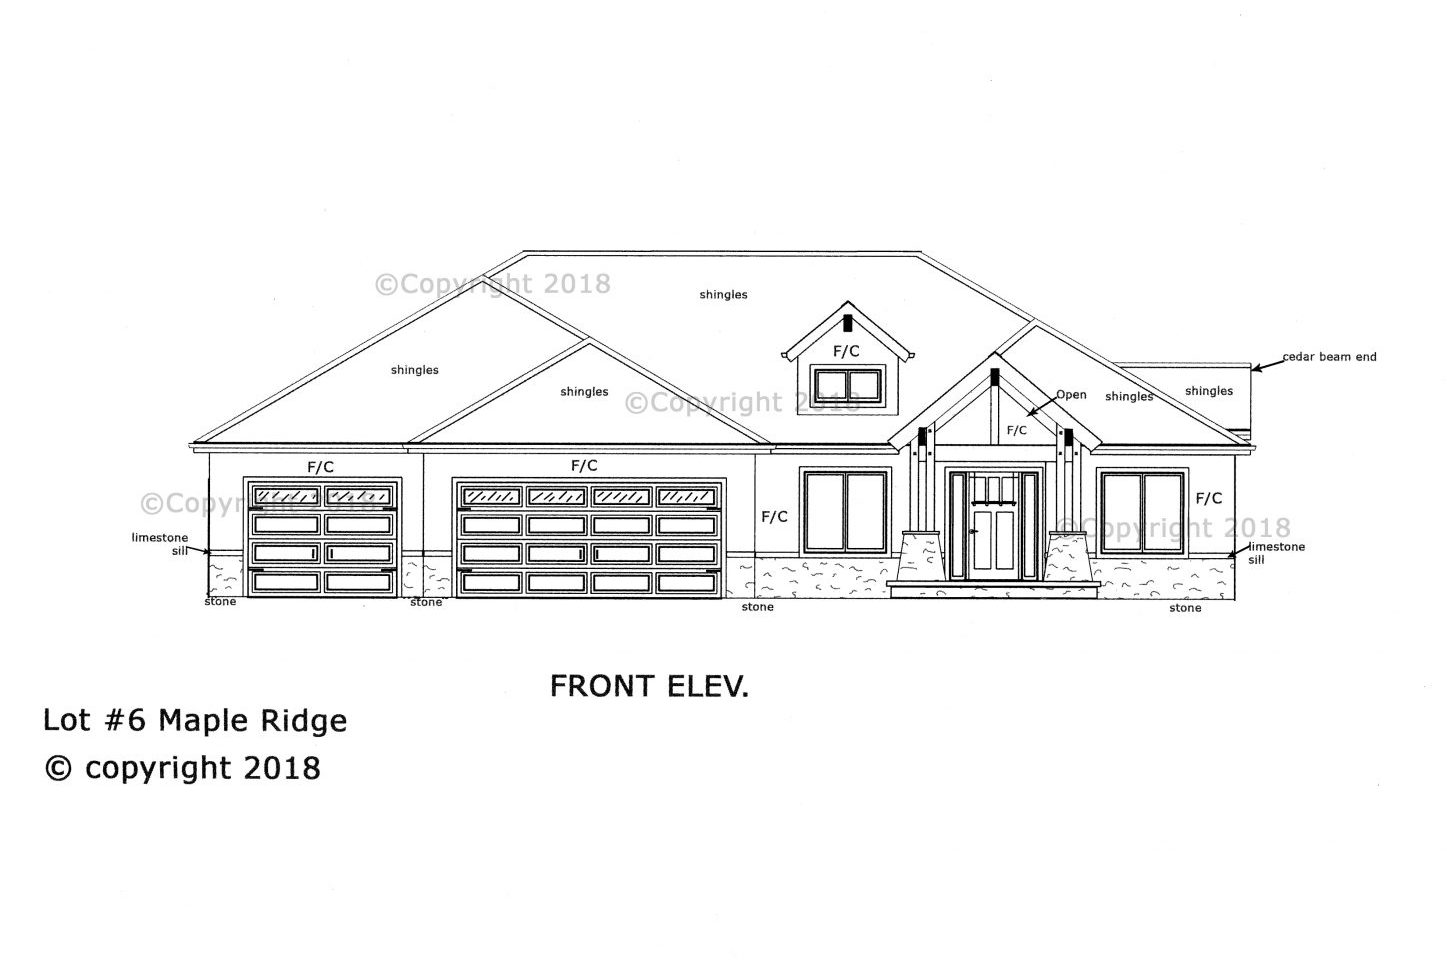 Lot 6 Maple Ridge